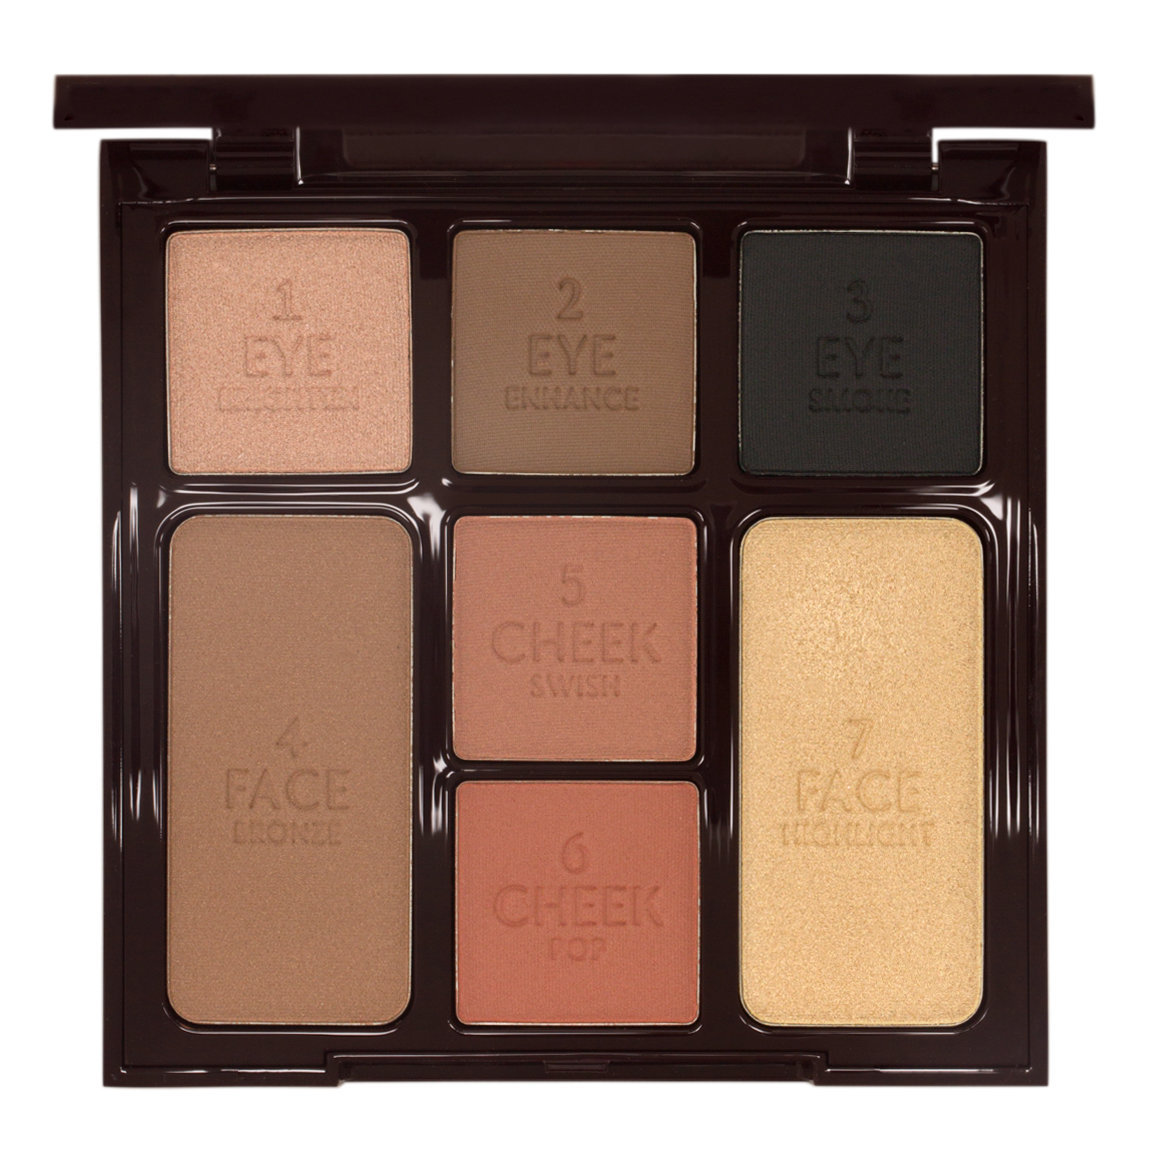 Charlotte Tilbury Instant Look in a Palette Smokey Eye Beauty product smear.